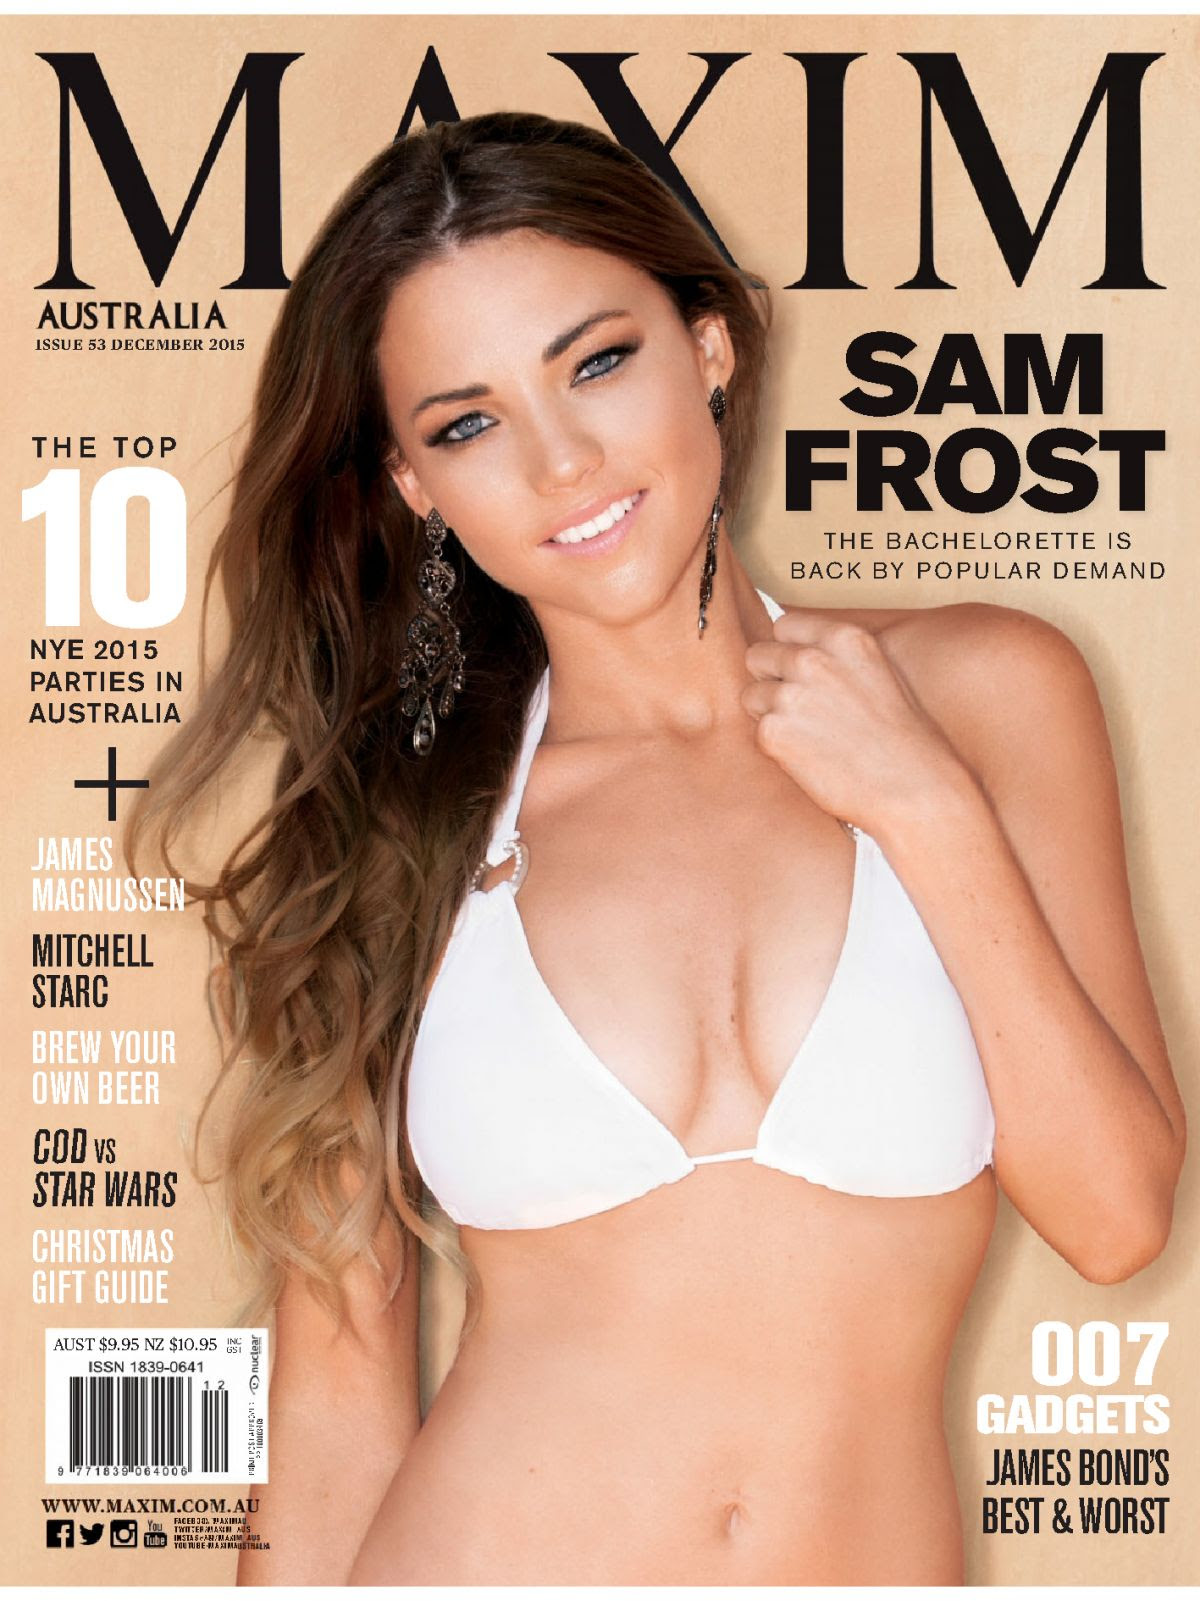 SAM FROST in Maxim Magazine, Australia December 2015 Issue